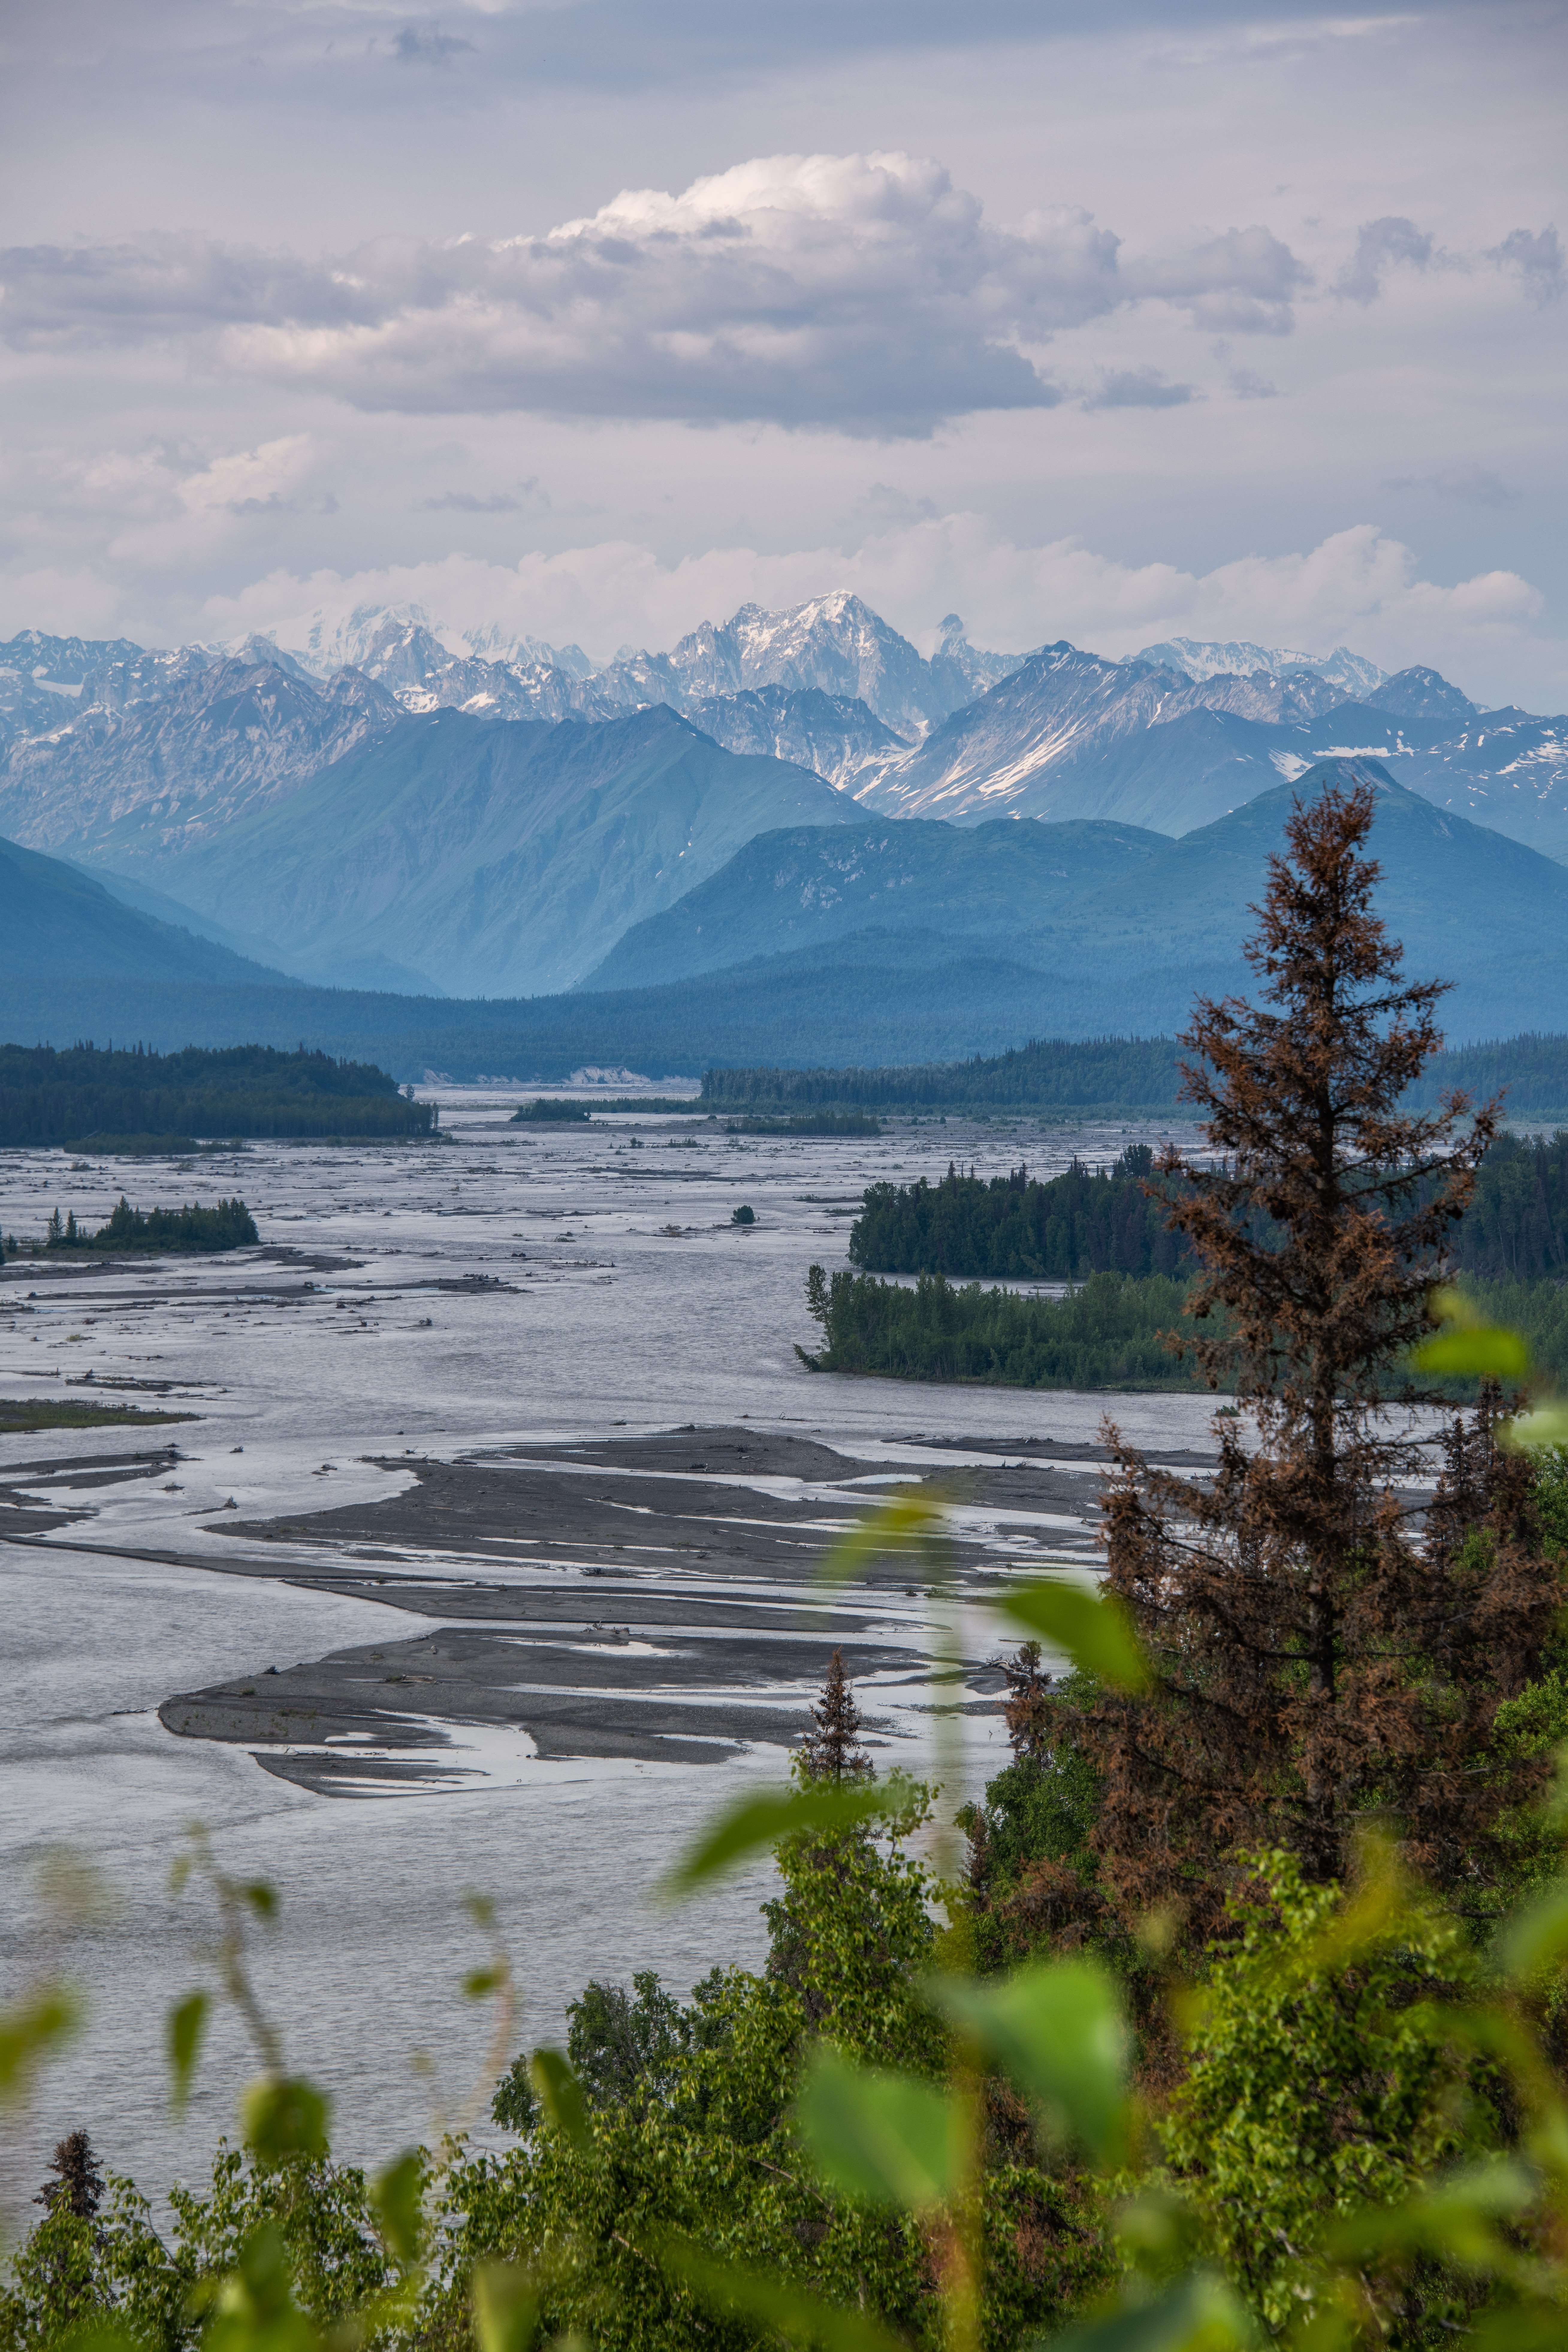 Viewpoint on the way to Denali National PArk by Travel Anubhav.